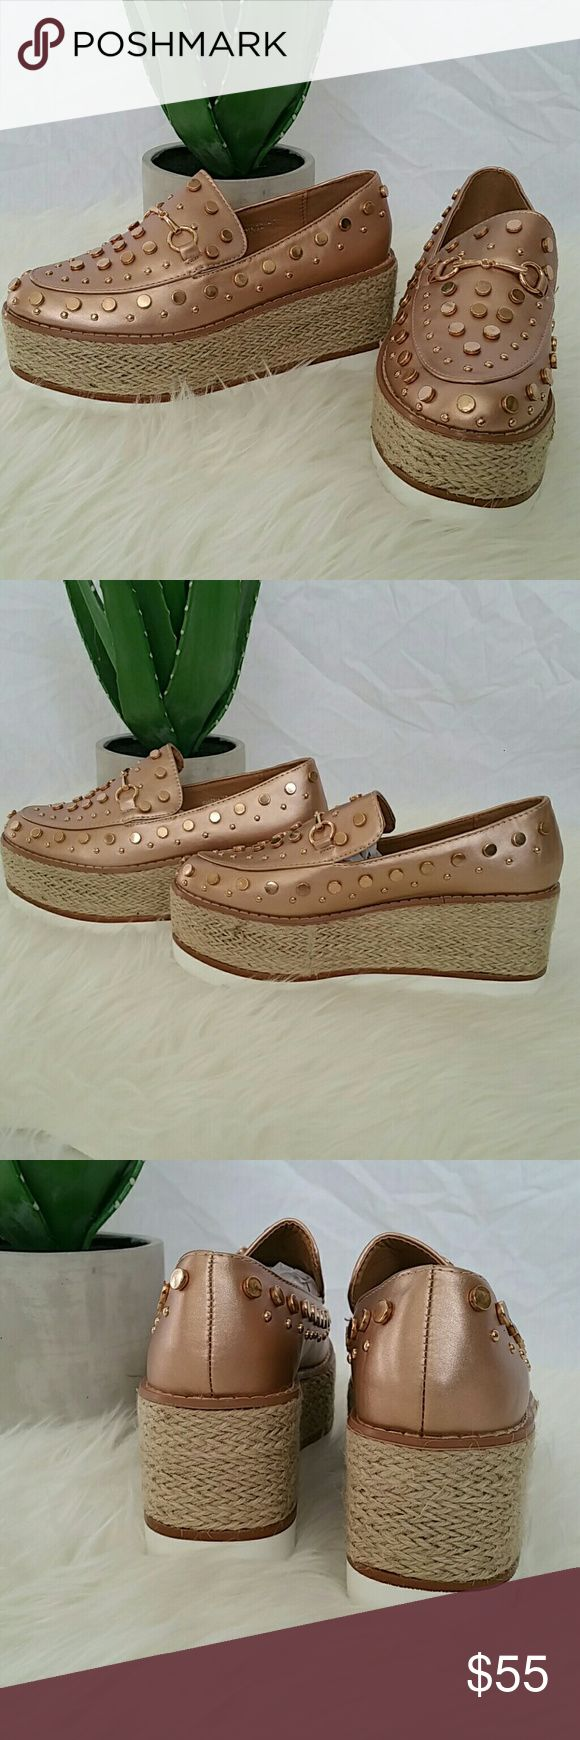 "Rose Gold Espadrille Platforms @blushonme at Poshmark   Rose Gold man made leather, espadrille platforms.  The embellished buttons has a distressed look.  Comfortable and trendy!   True to size   Heel - Approx  2""  PLEASE ASK QUESTIONS BEFORE BUYING. ALL SALES ARE FINAL. NO RETURNS. NO EXCHANGES.   ● PRICE IS FIRM ●  Box not included  Boutique brand  No Trade Shoes Espadrilles"